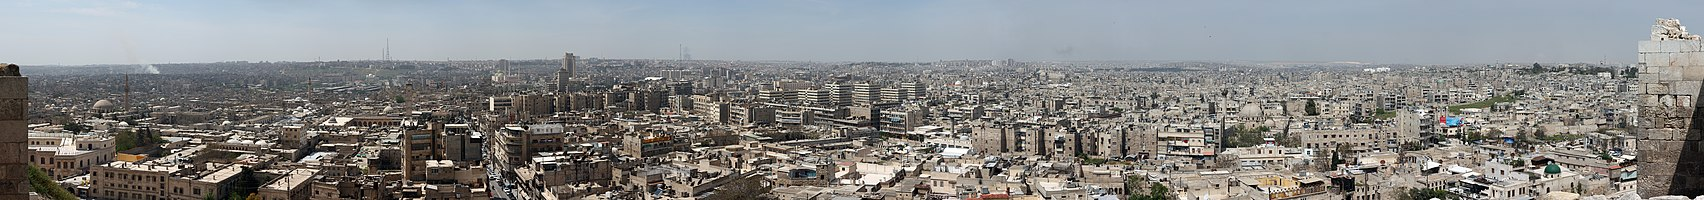 Panoramic view of Aleppo, Syria